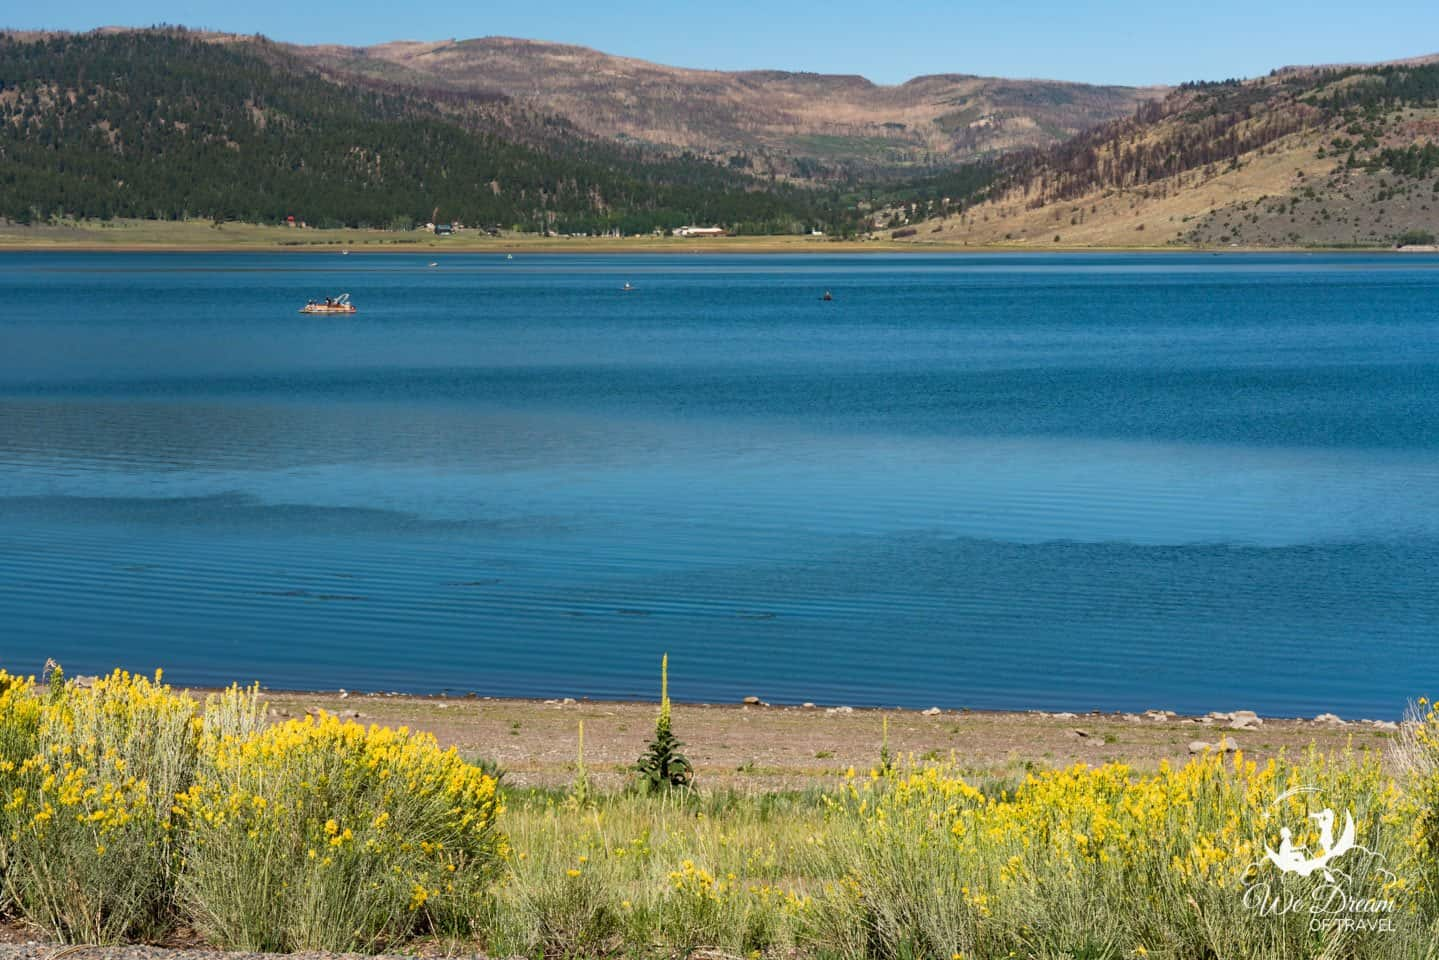 Escape the oranges and red with vibrant blues at Panguitch Lake in Dixie National Forest.